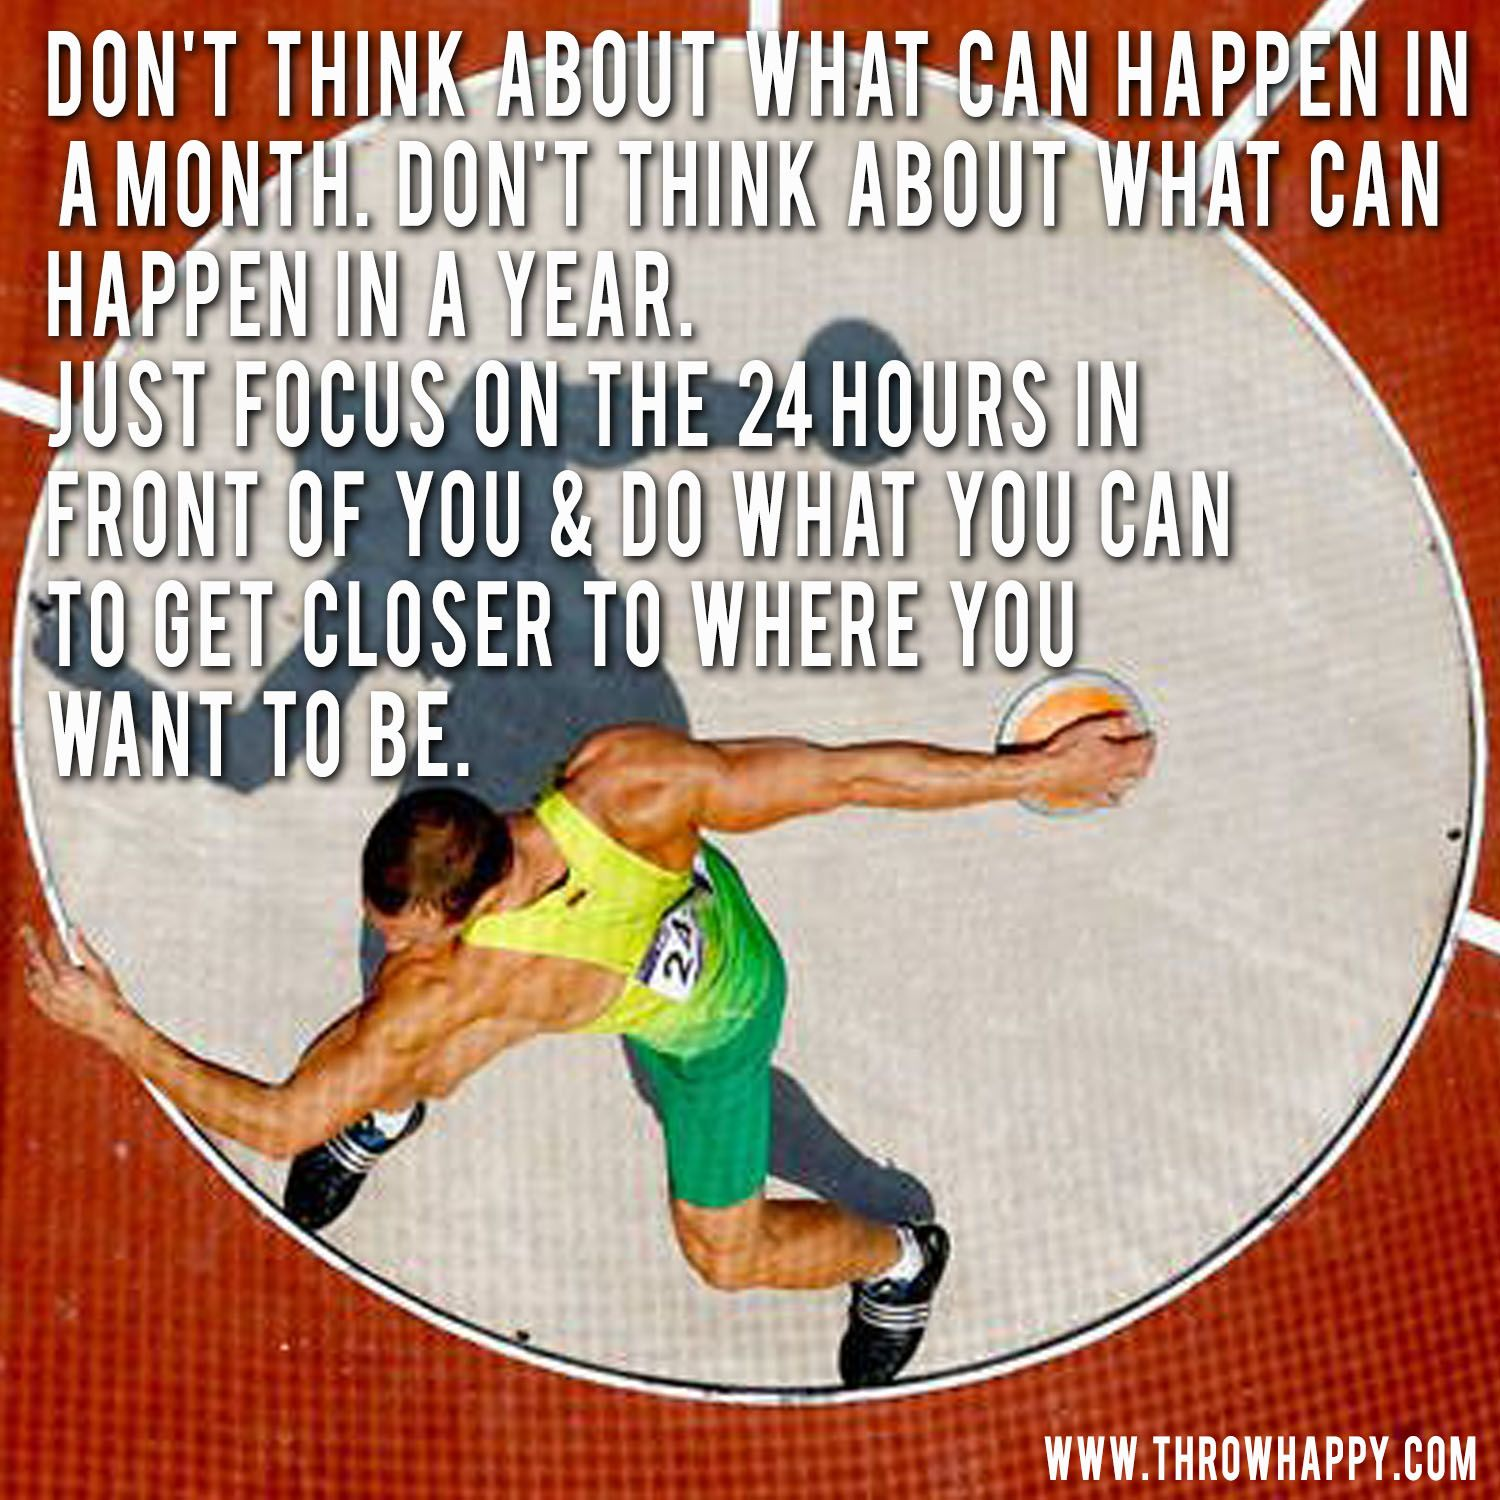 Track and field motivational inspirational quotes/sayings. Find more track and f...